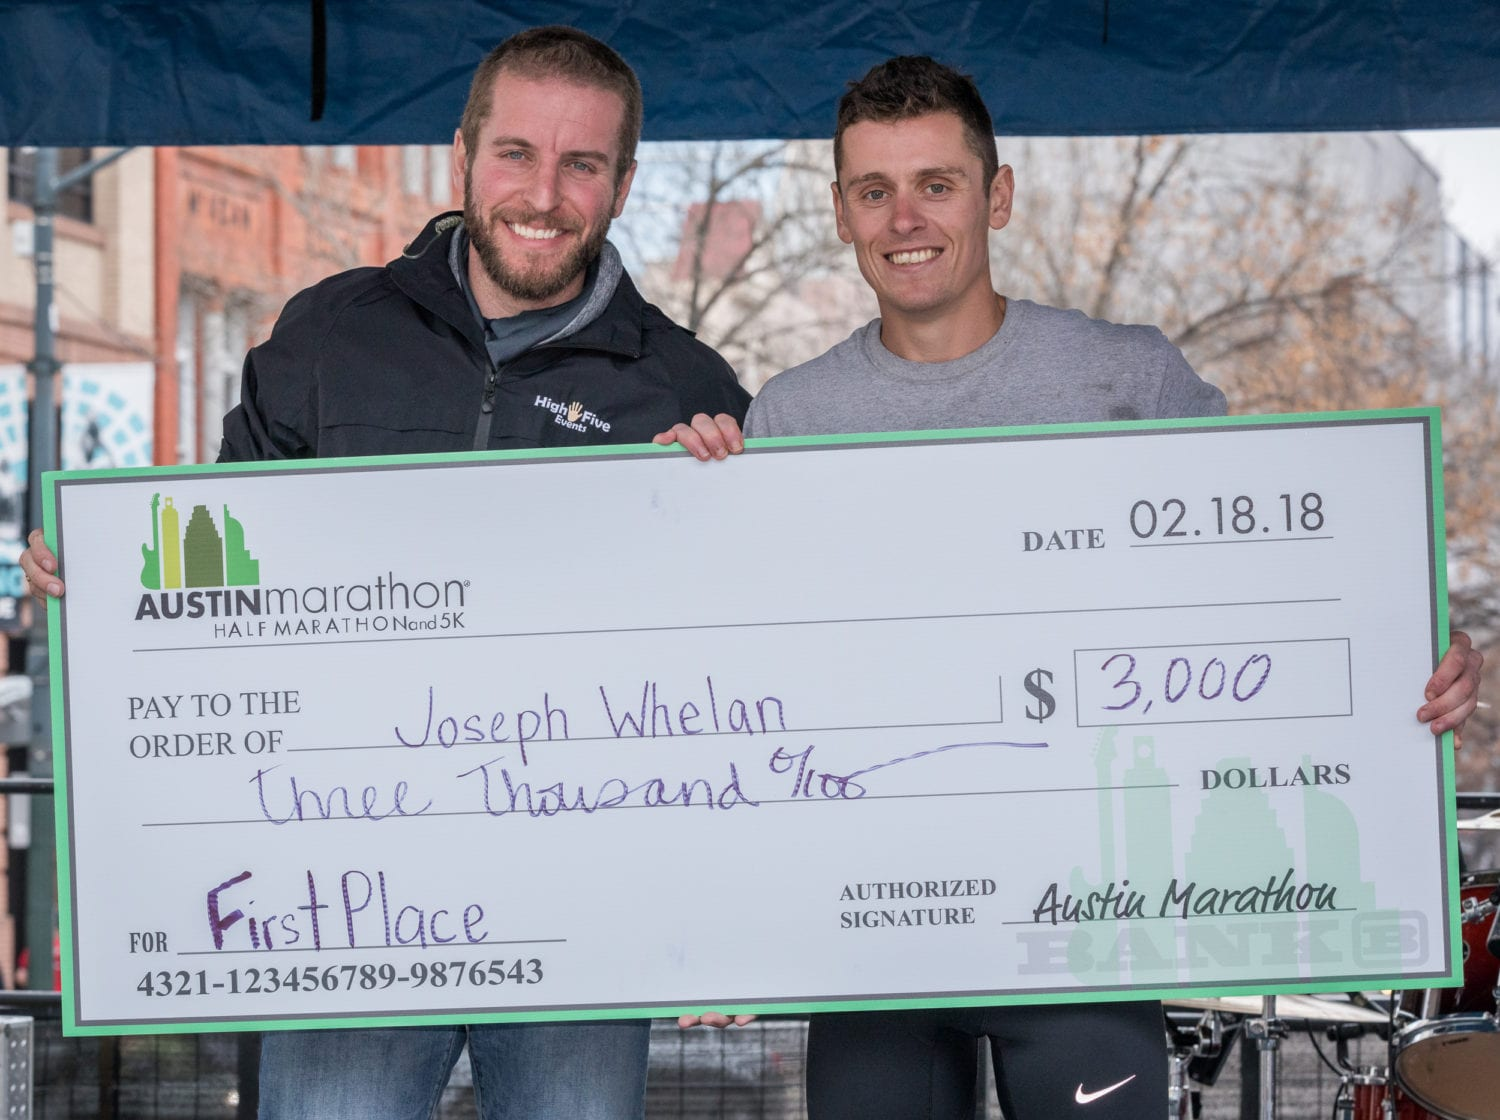 Joey Whelan accepts his Austin Marathon championship check.